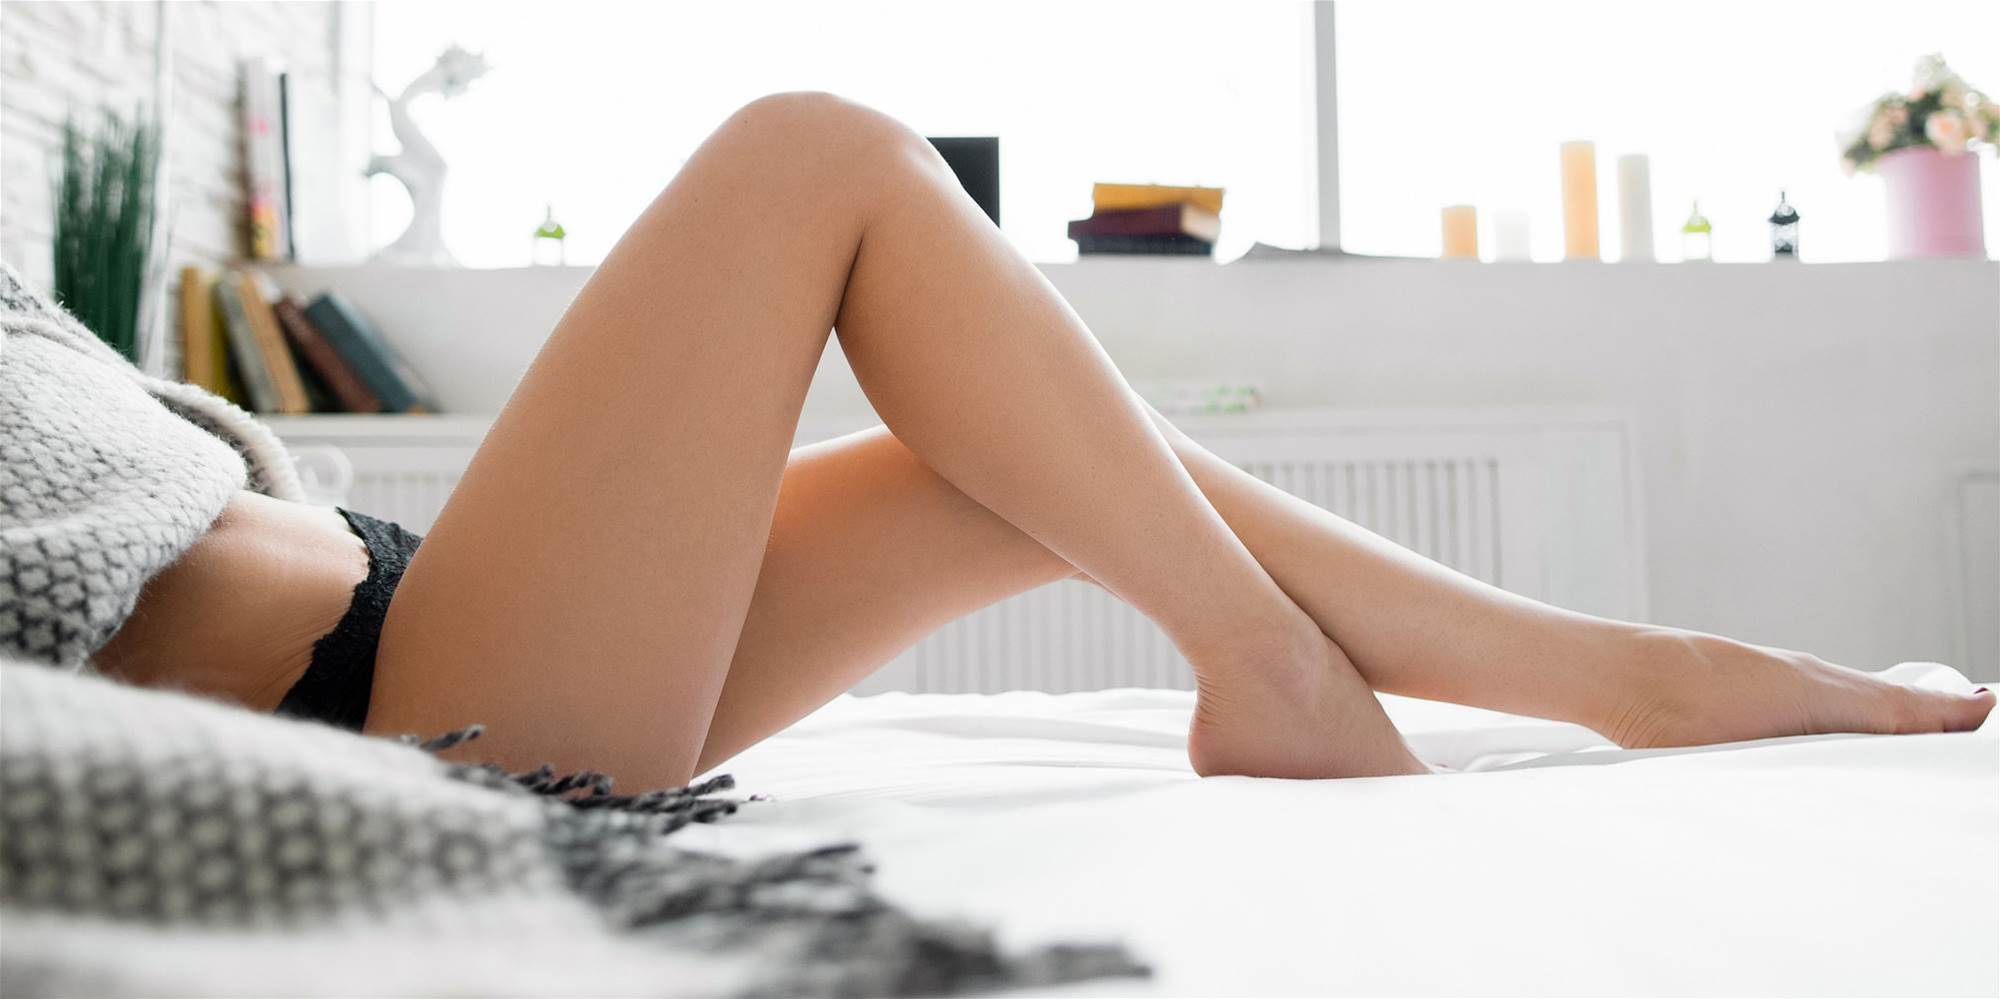 6 Healthy Reasons You Should Masturbate More Often